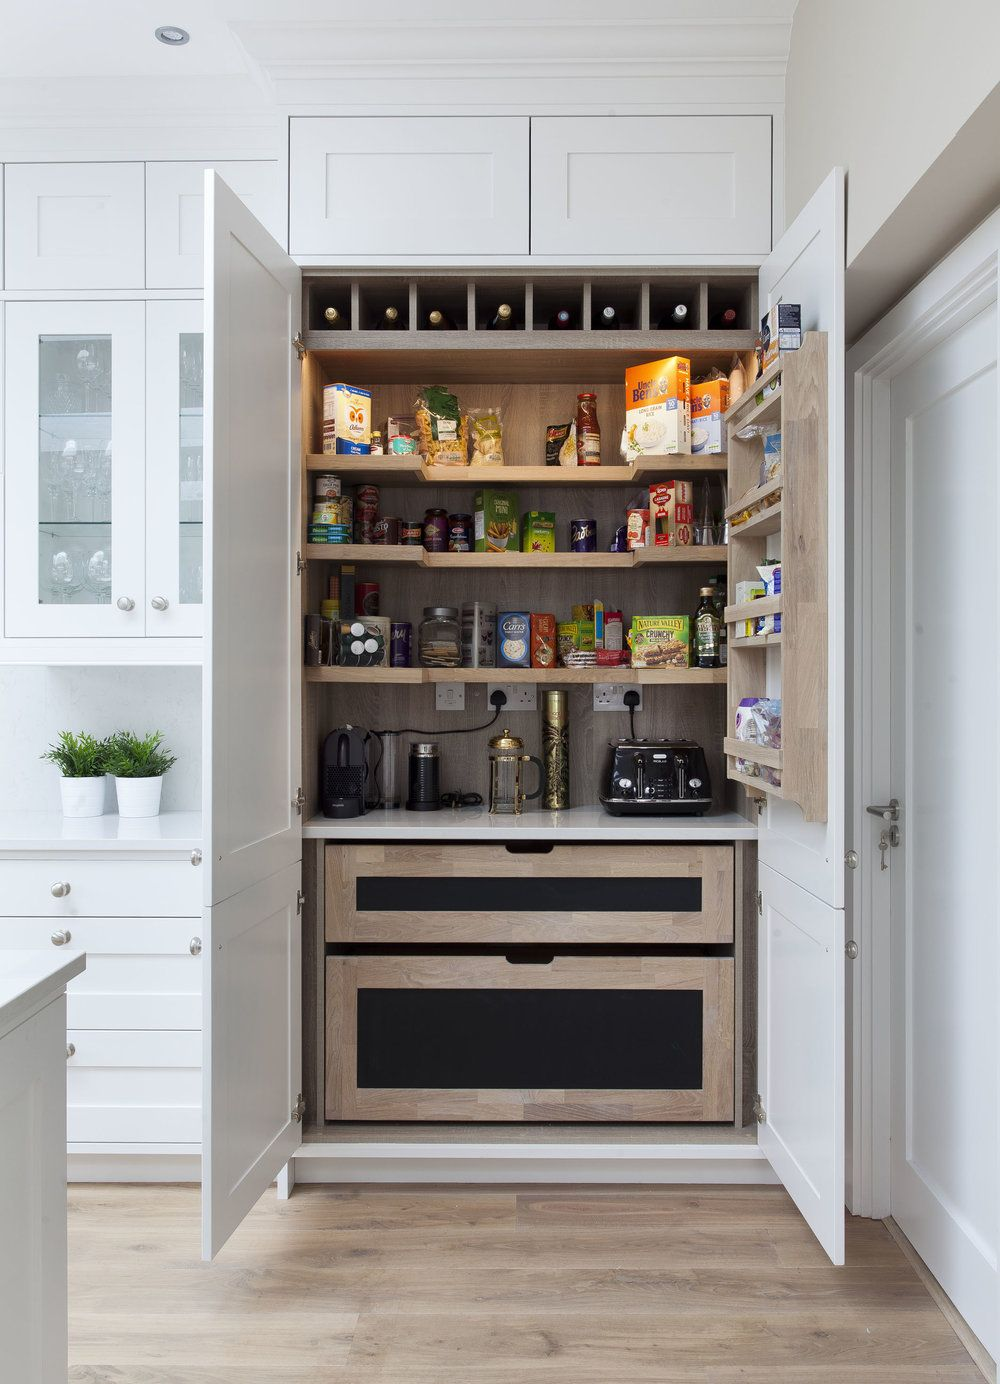 Keeping my extensive cookware and pantry items neatly creatively concealed behind cabinetry is desirable also creative inspiring design ideas interior rh pinterest